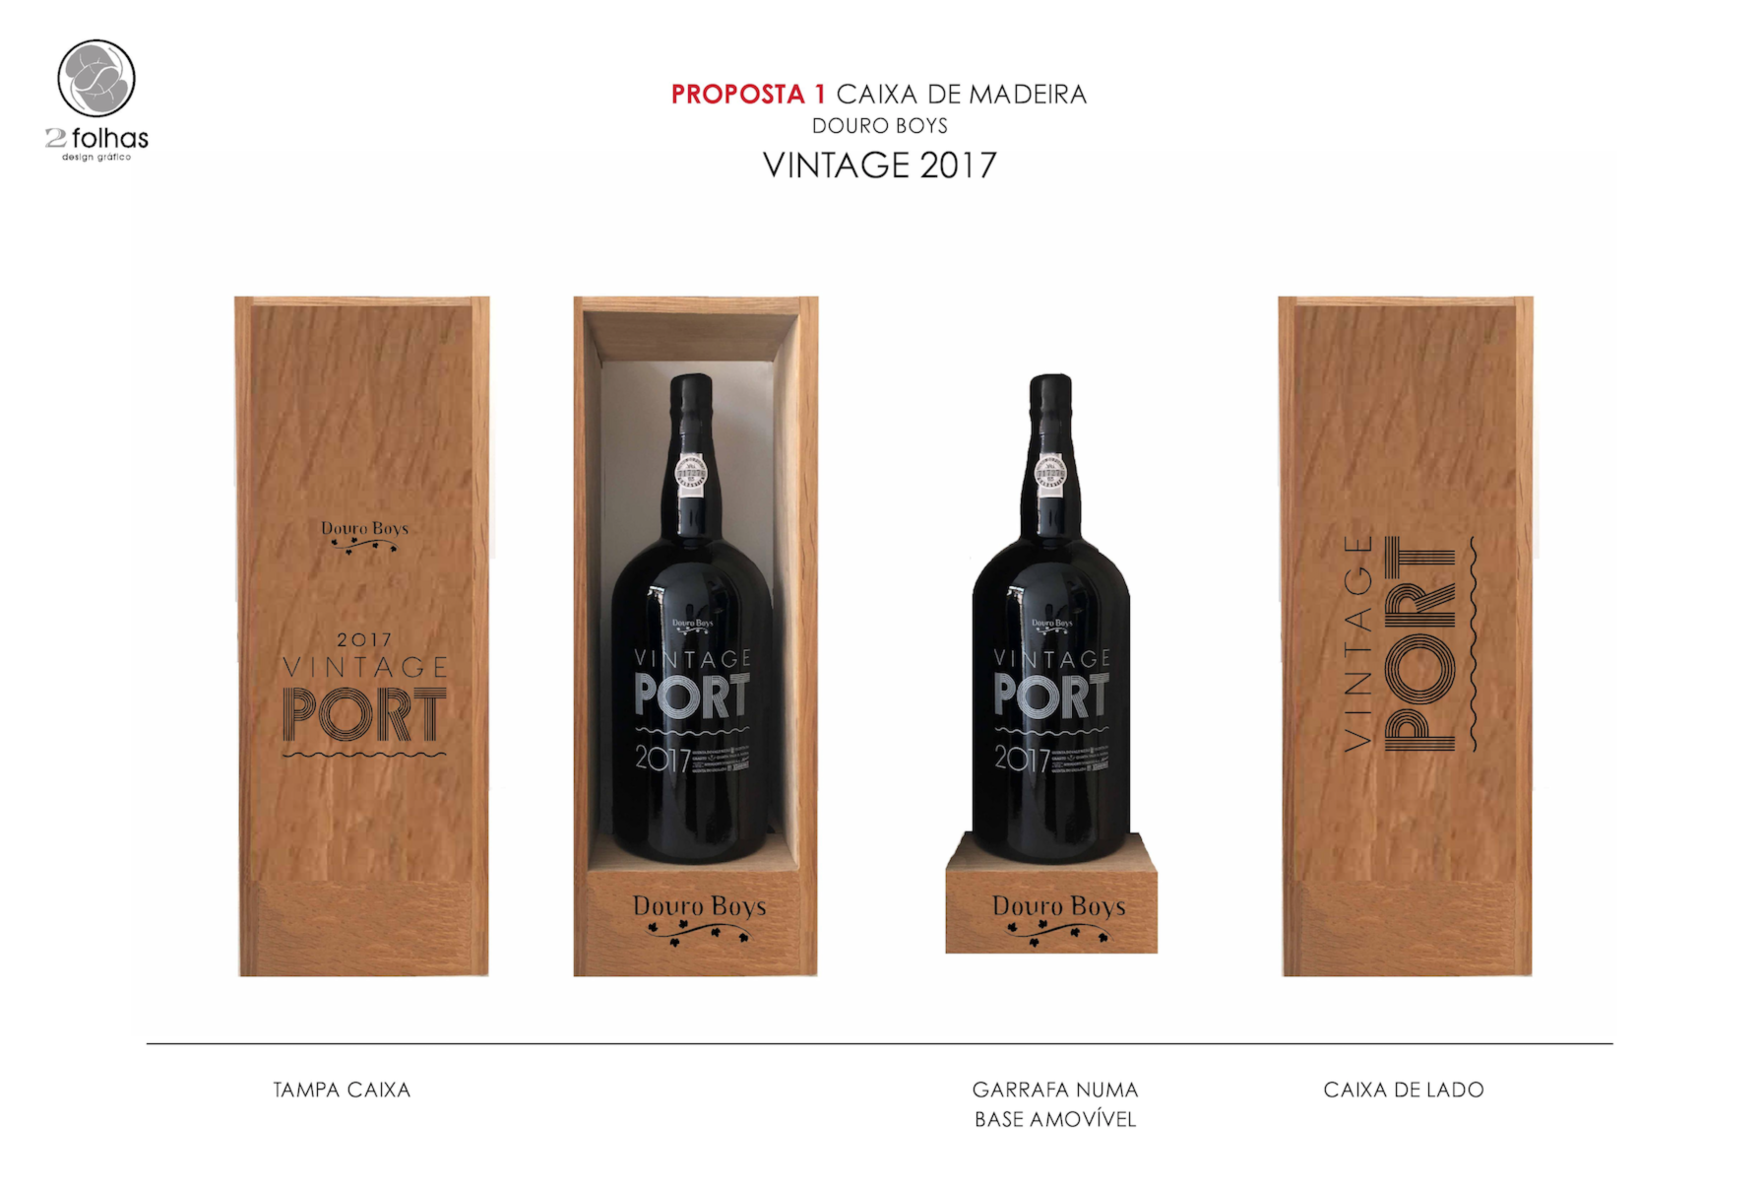 douro_boys_port